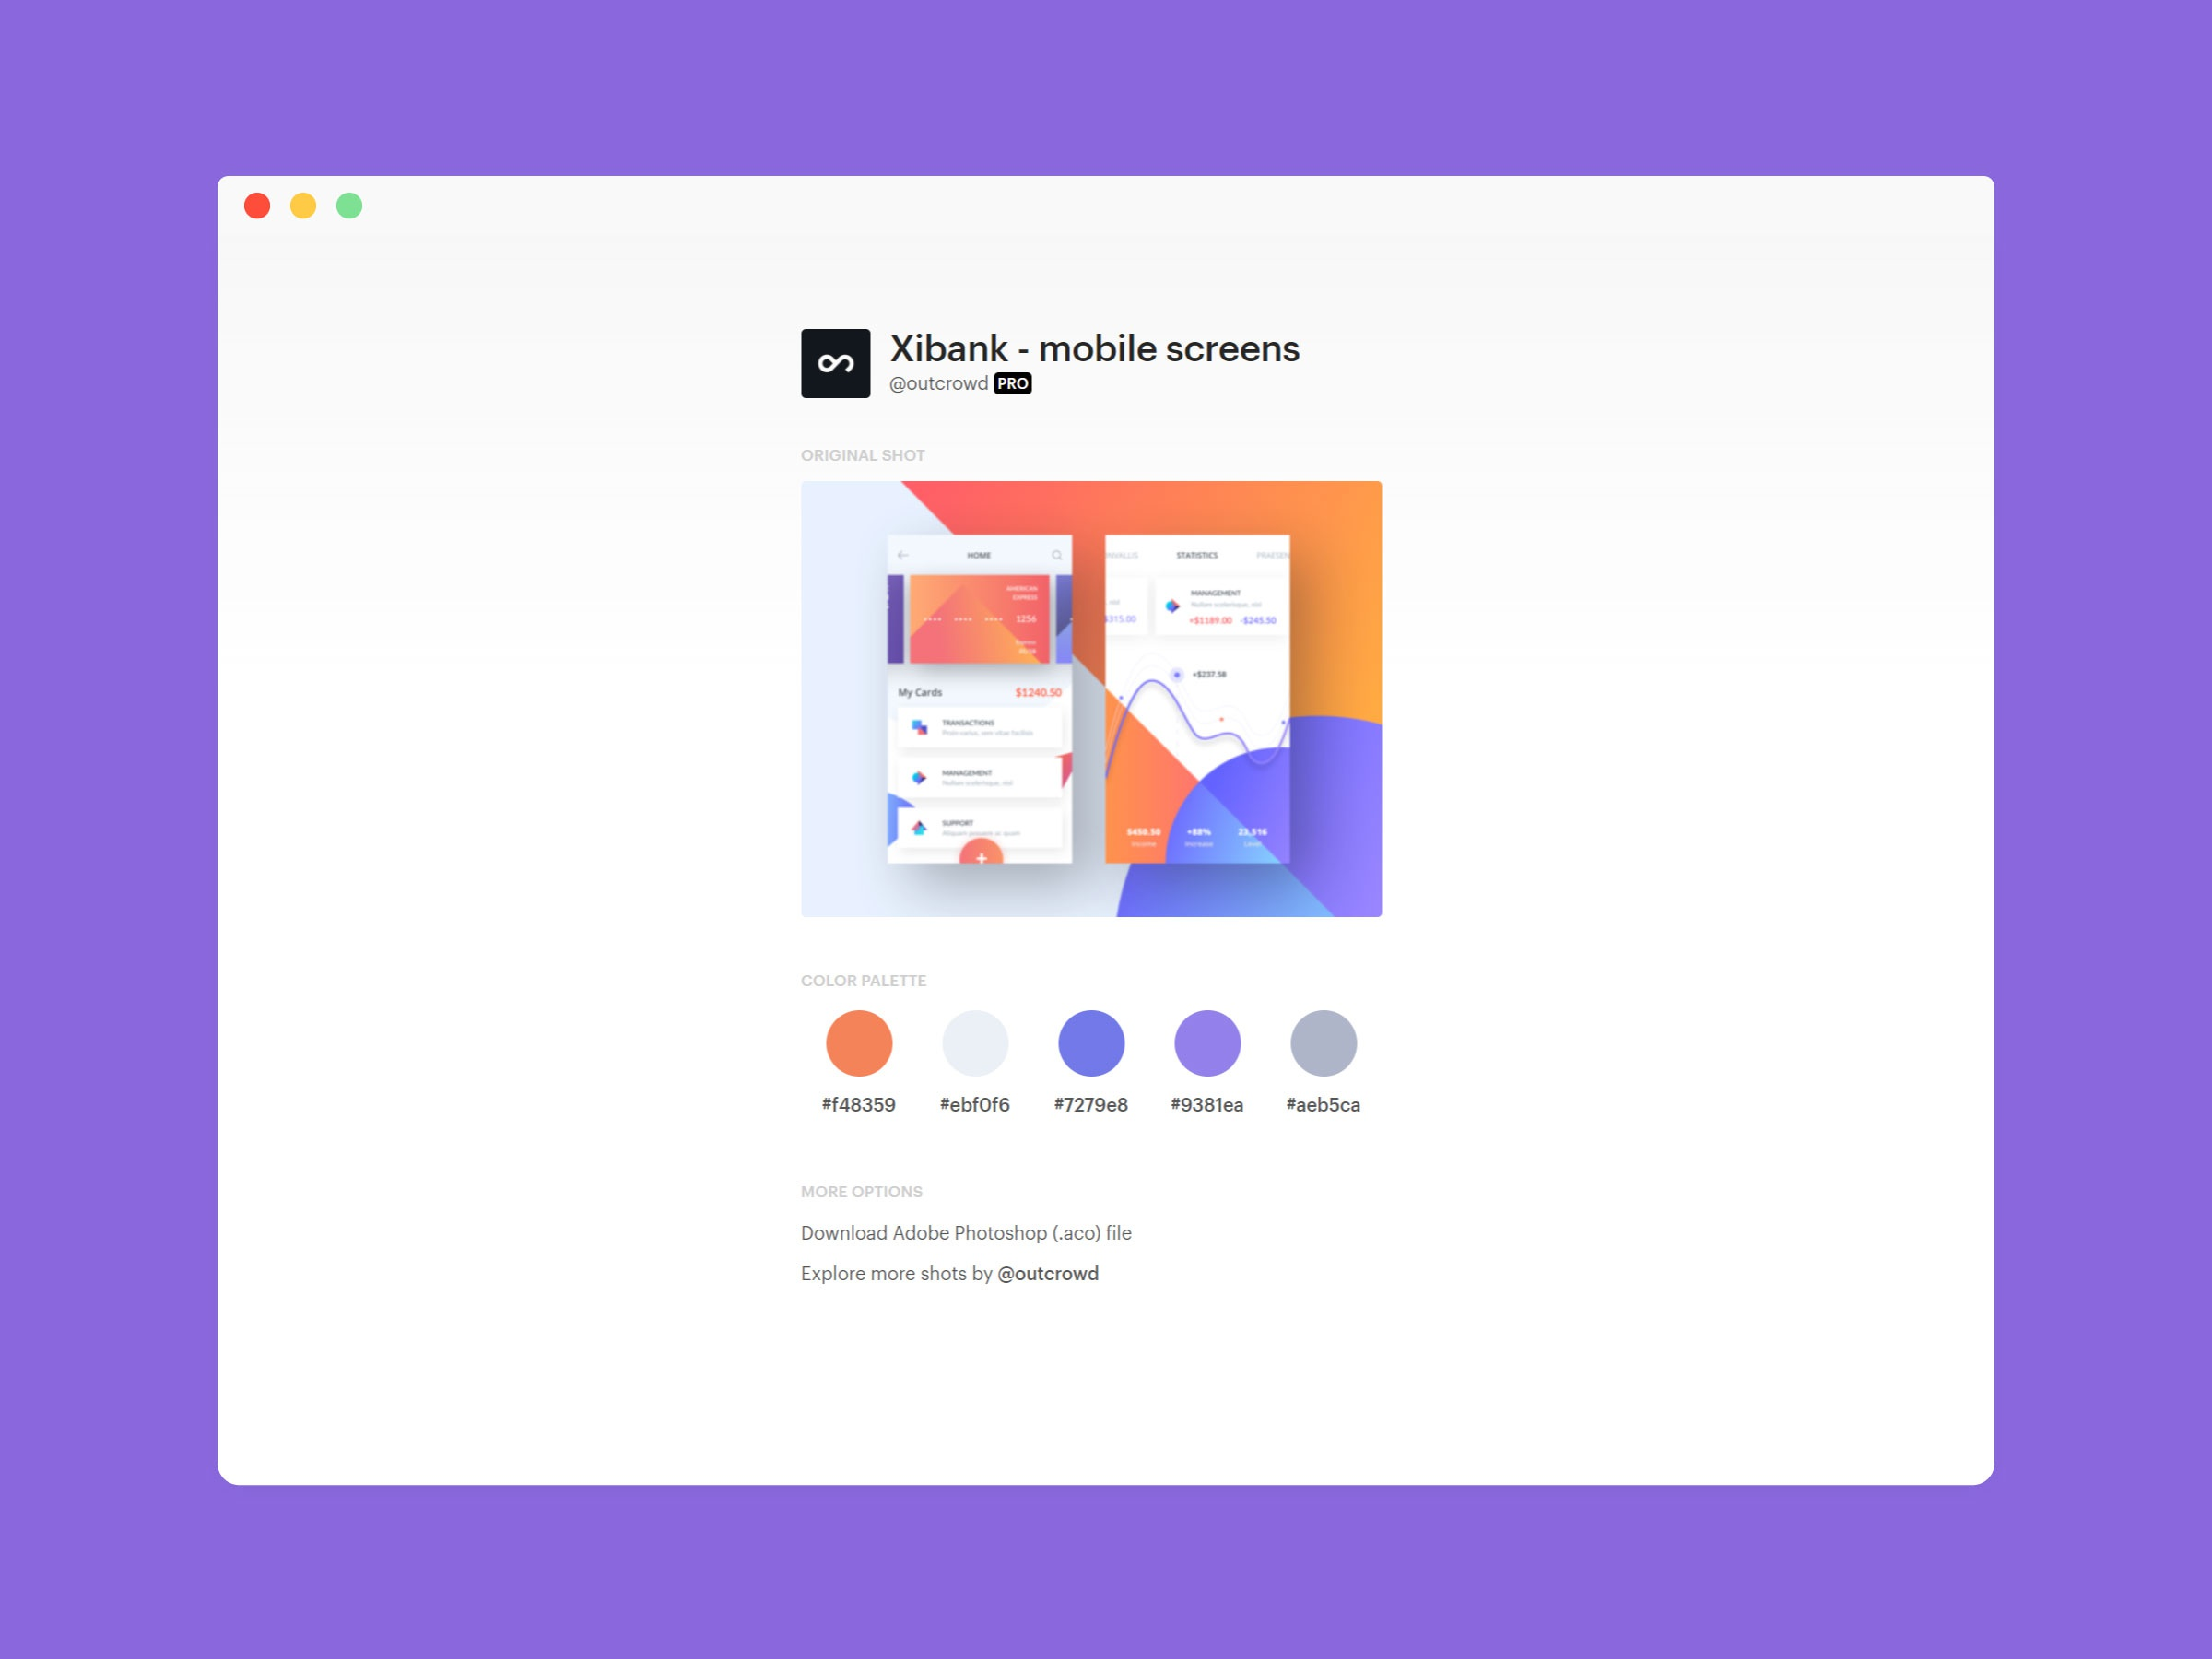 Stefan Mansson / Projects / The Colorbook - Dribbble